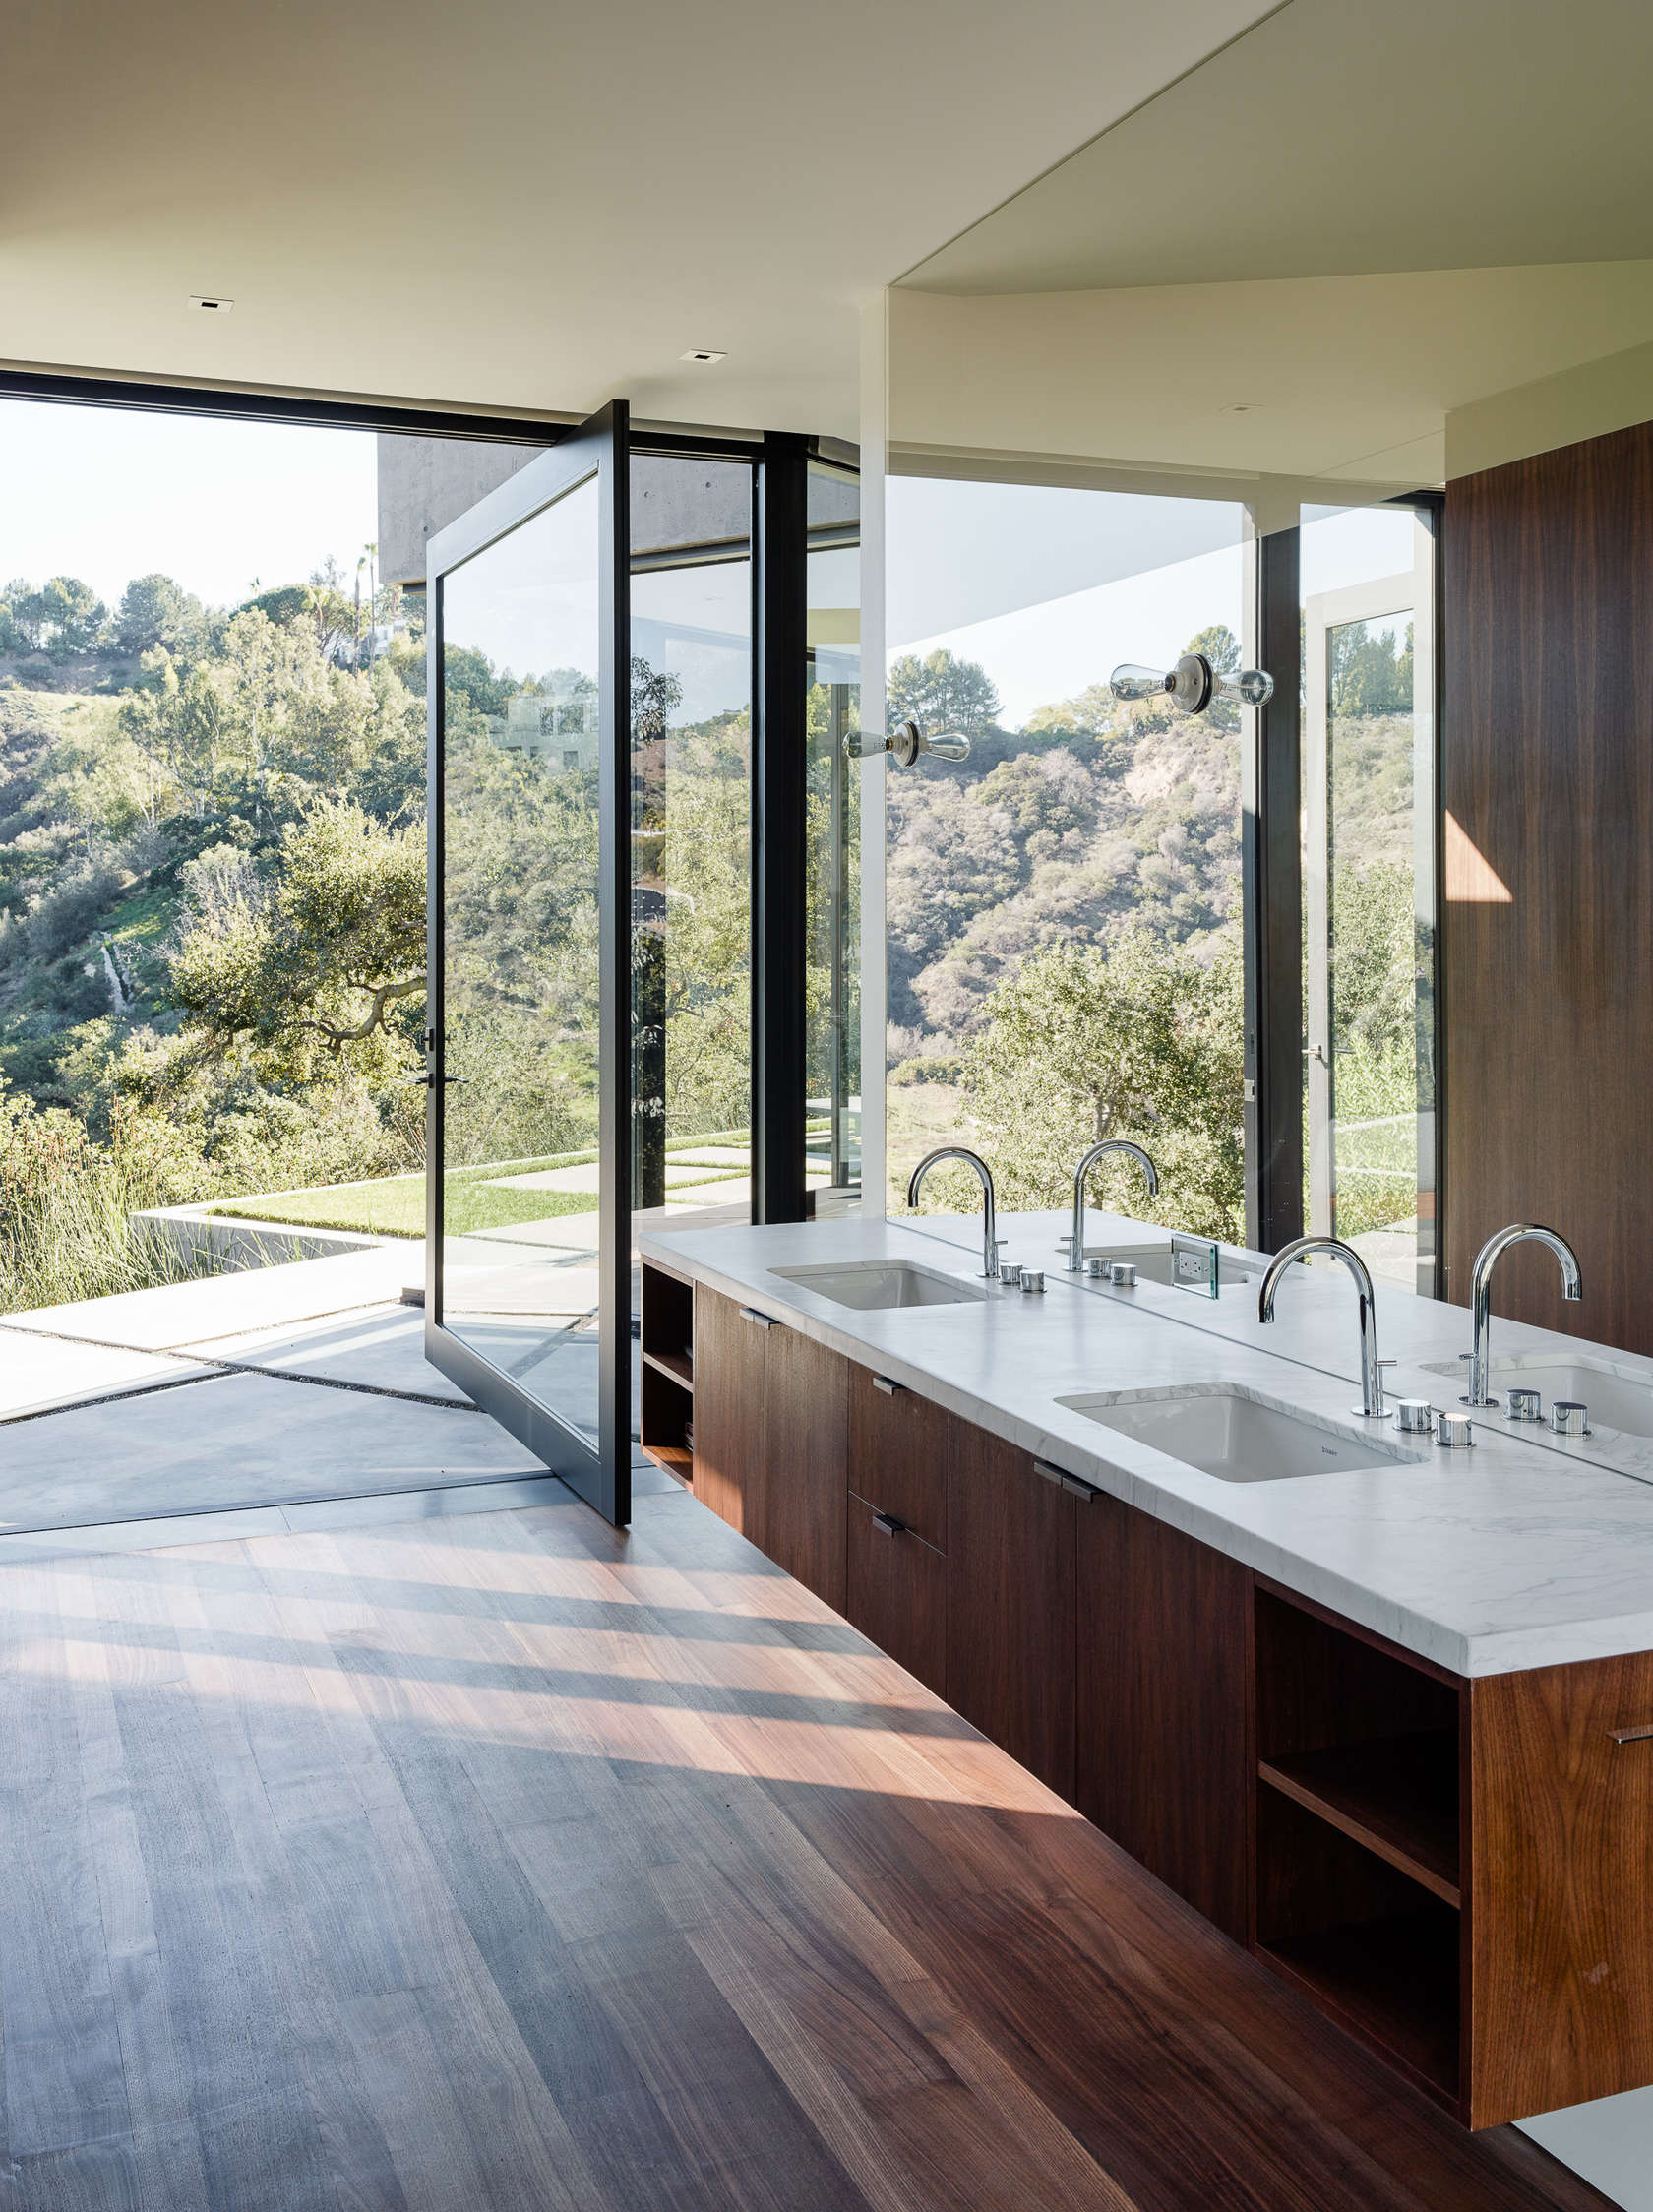 Modern Wood Bathroom - An upside down beverly hills home with a minimalist exterior